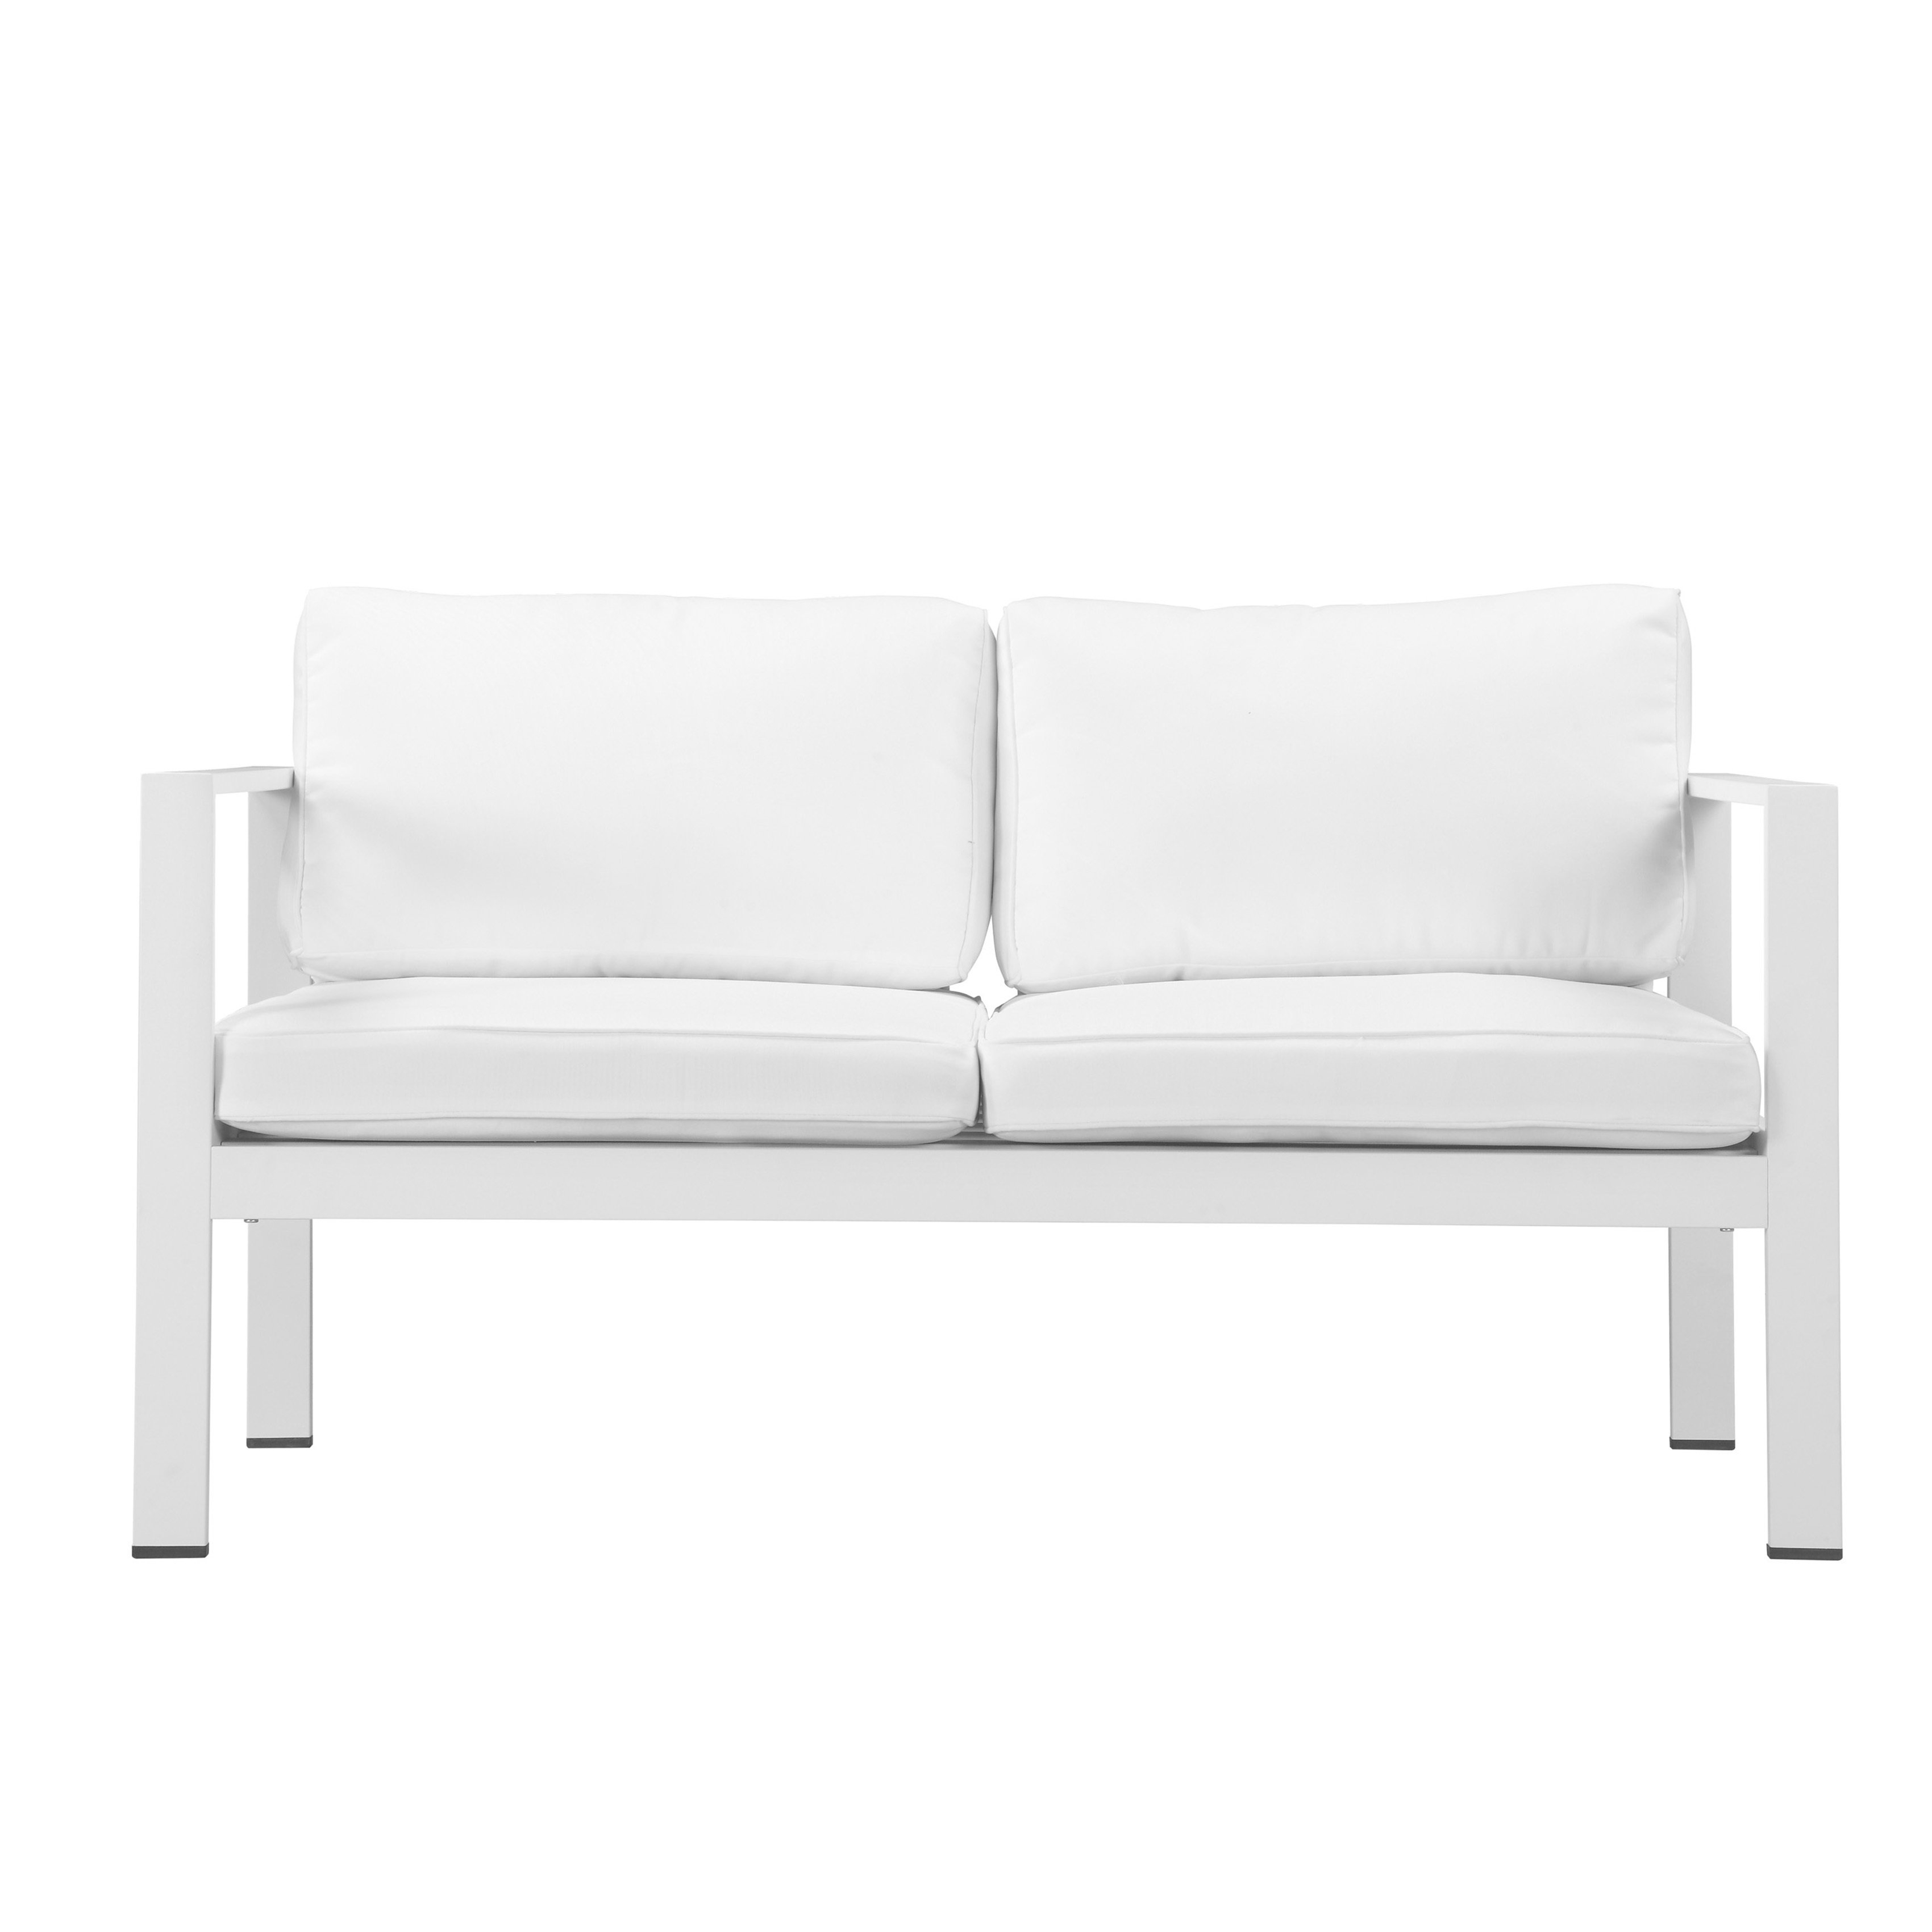 Shop Pangea Home Karen Fabric/ Aluminum 4 Piece Sofa Set – Free Pertaining To Karen Sofa Chairs (View 16 of 25)